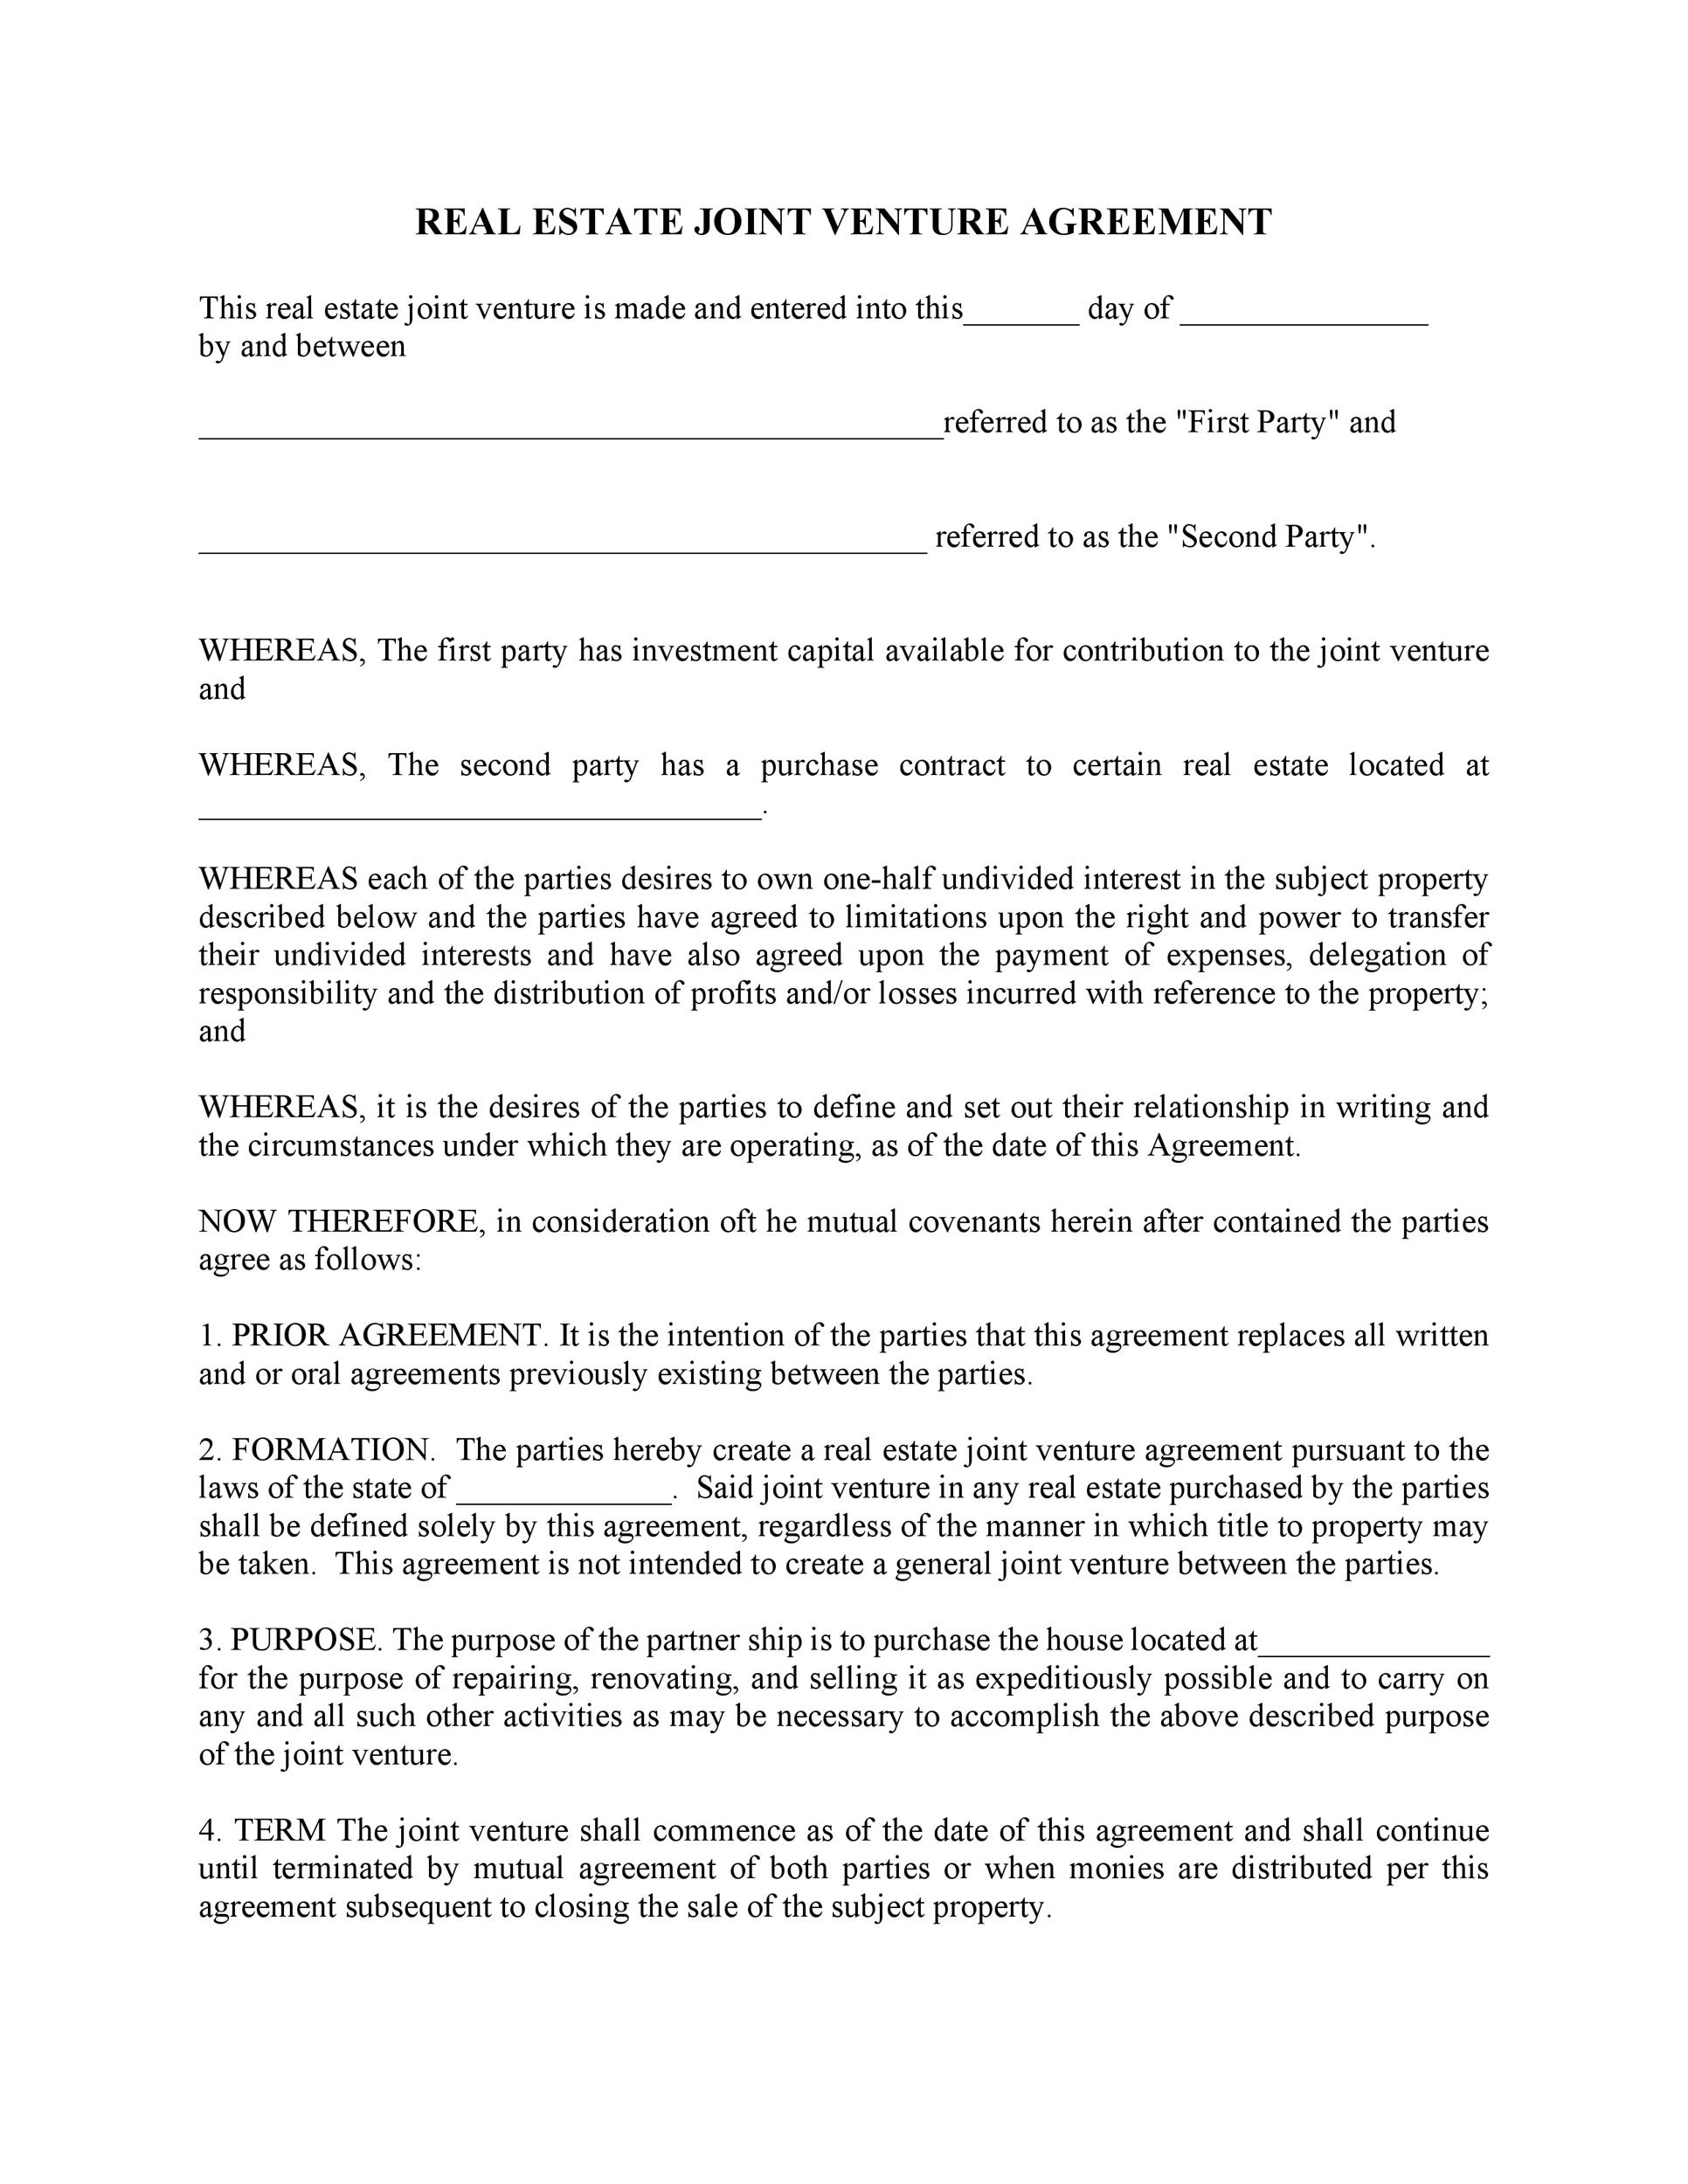 53 Simple Joint Venture Agreement Templates PDF, DOC - Template Lab